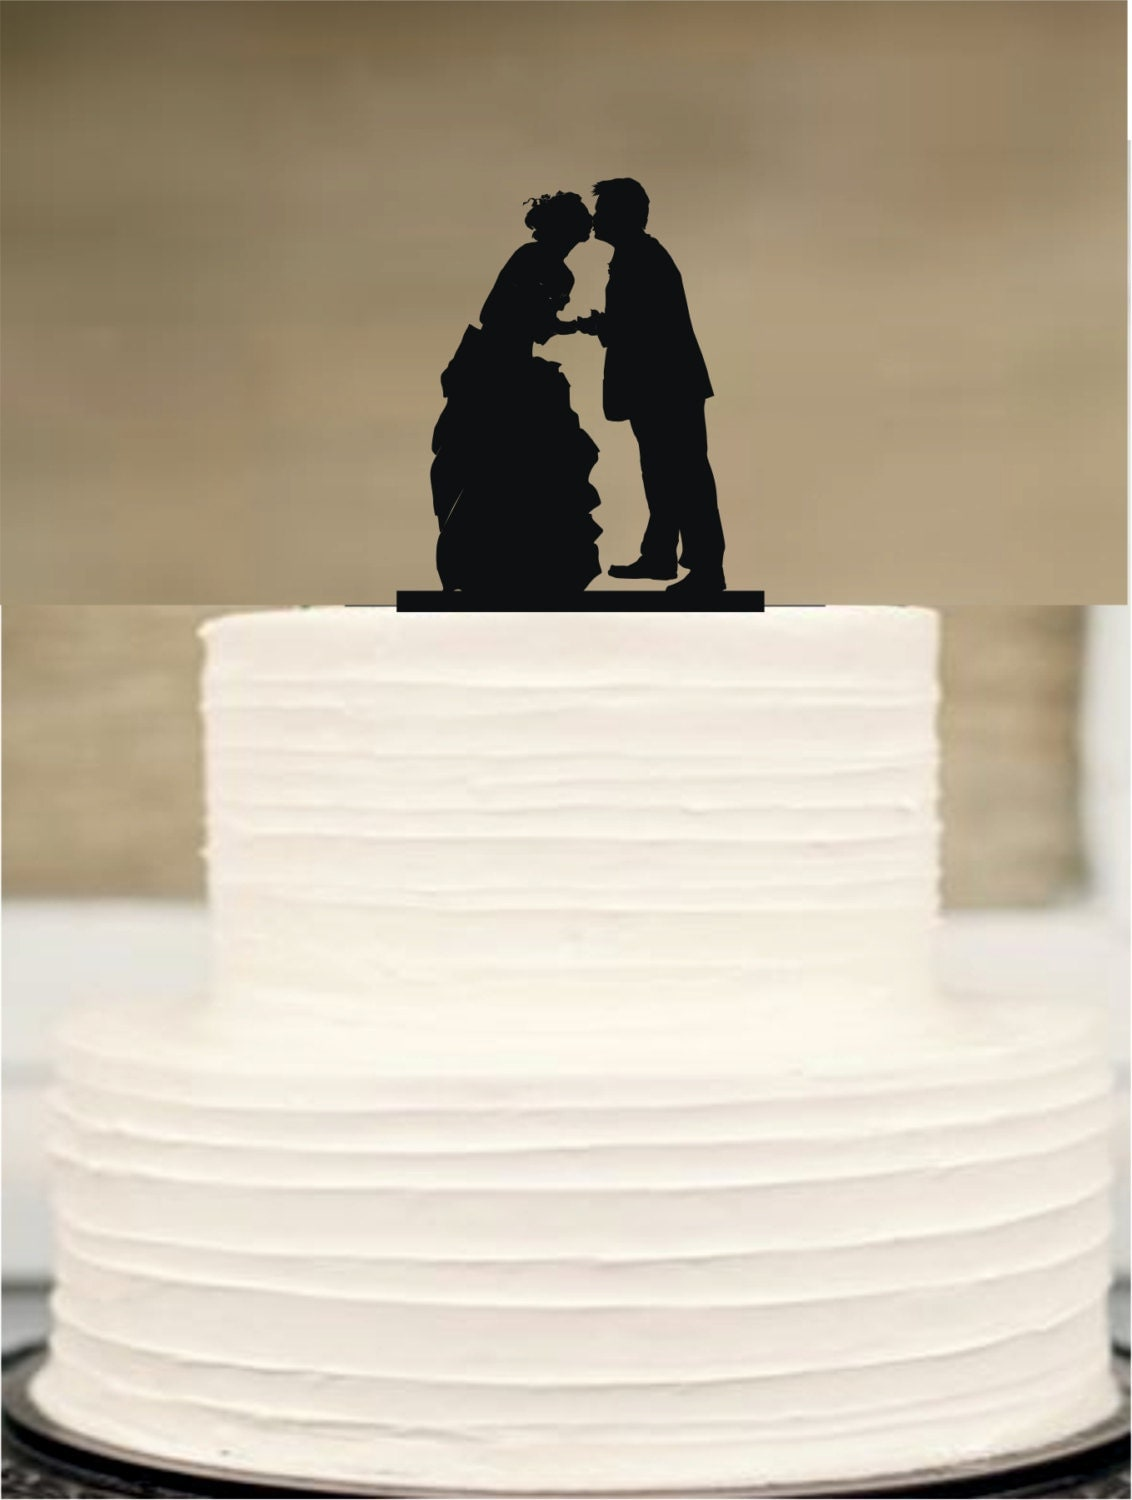 Silhouette Wedding Cake Topper Bride and groom Cake Topper